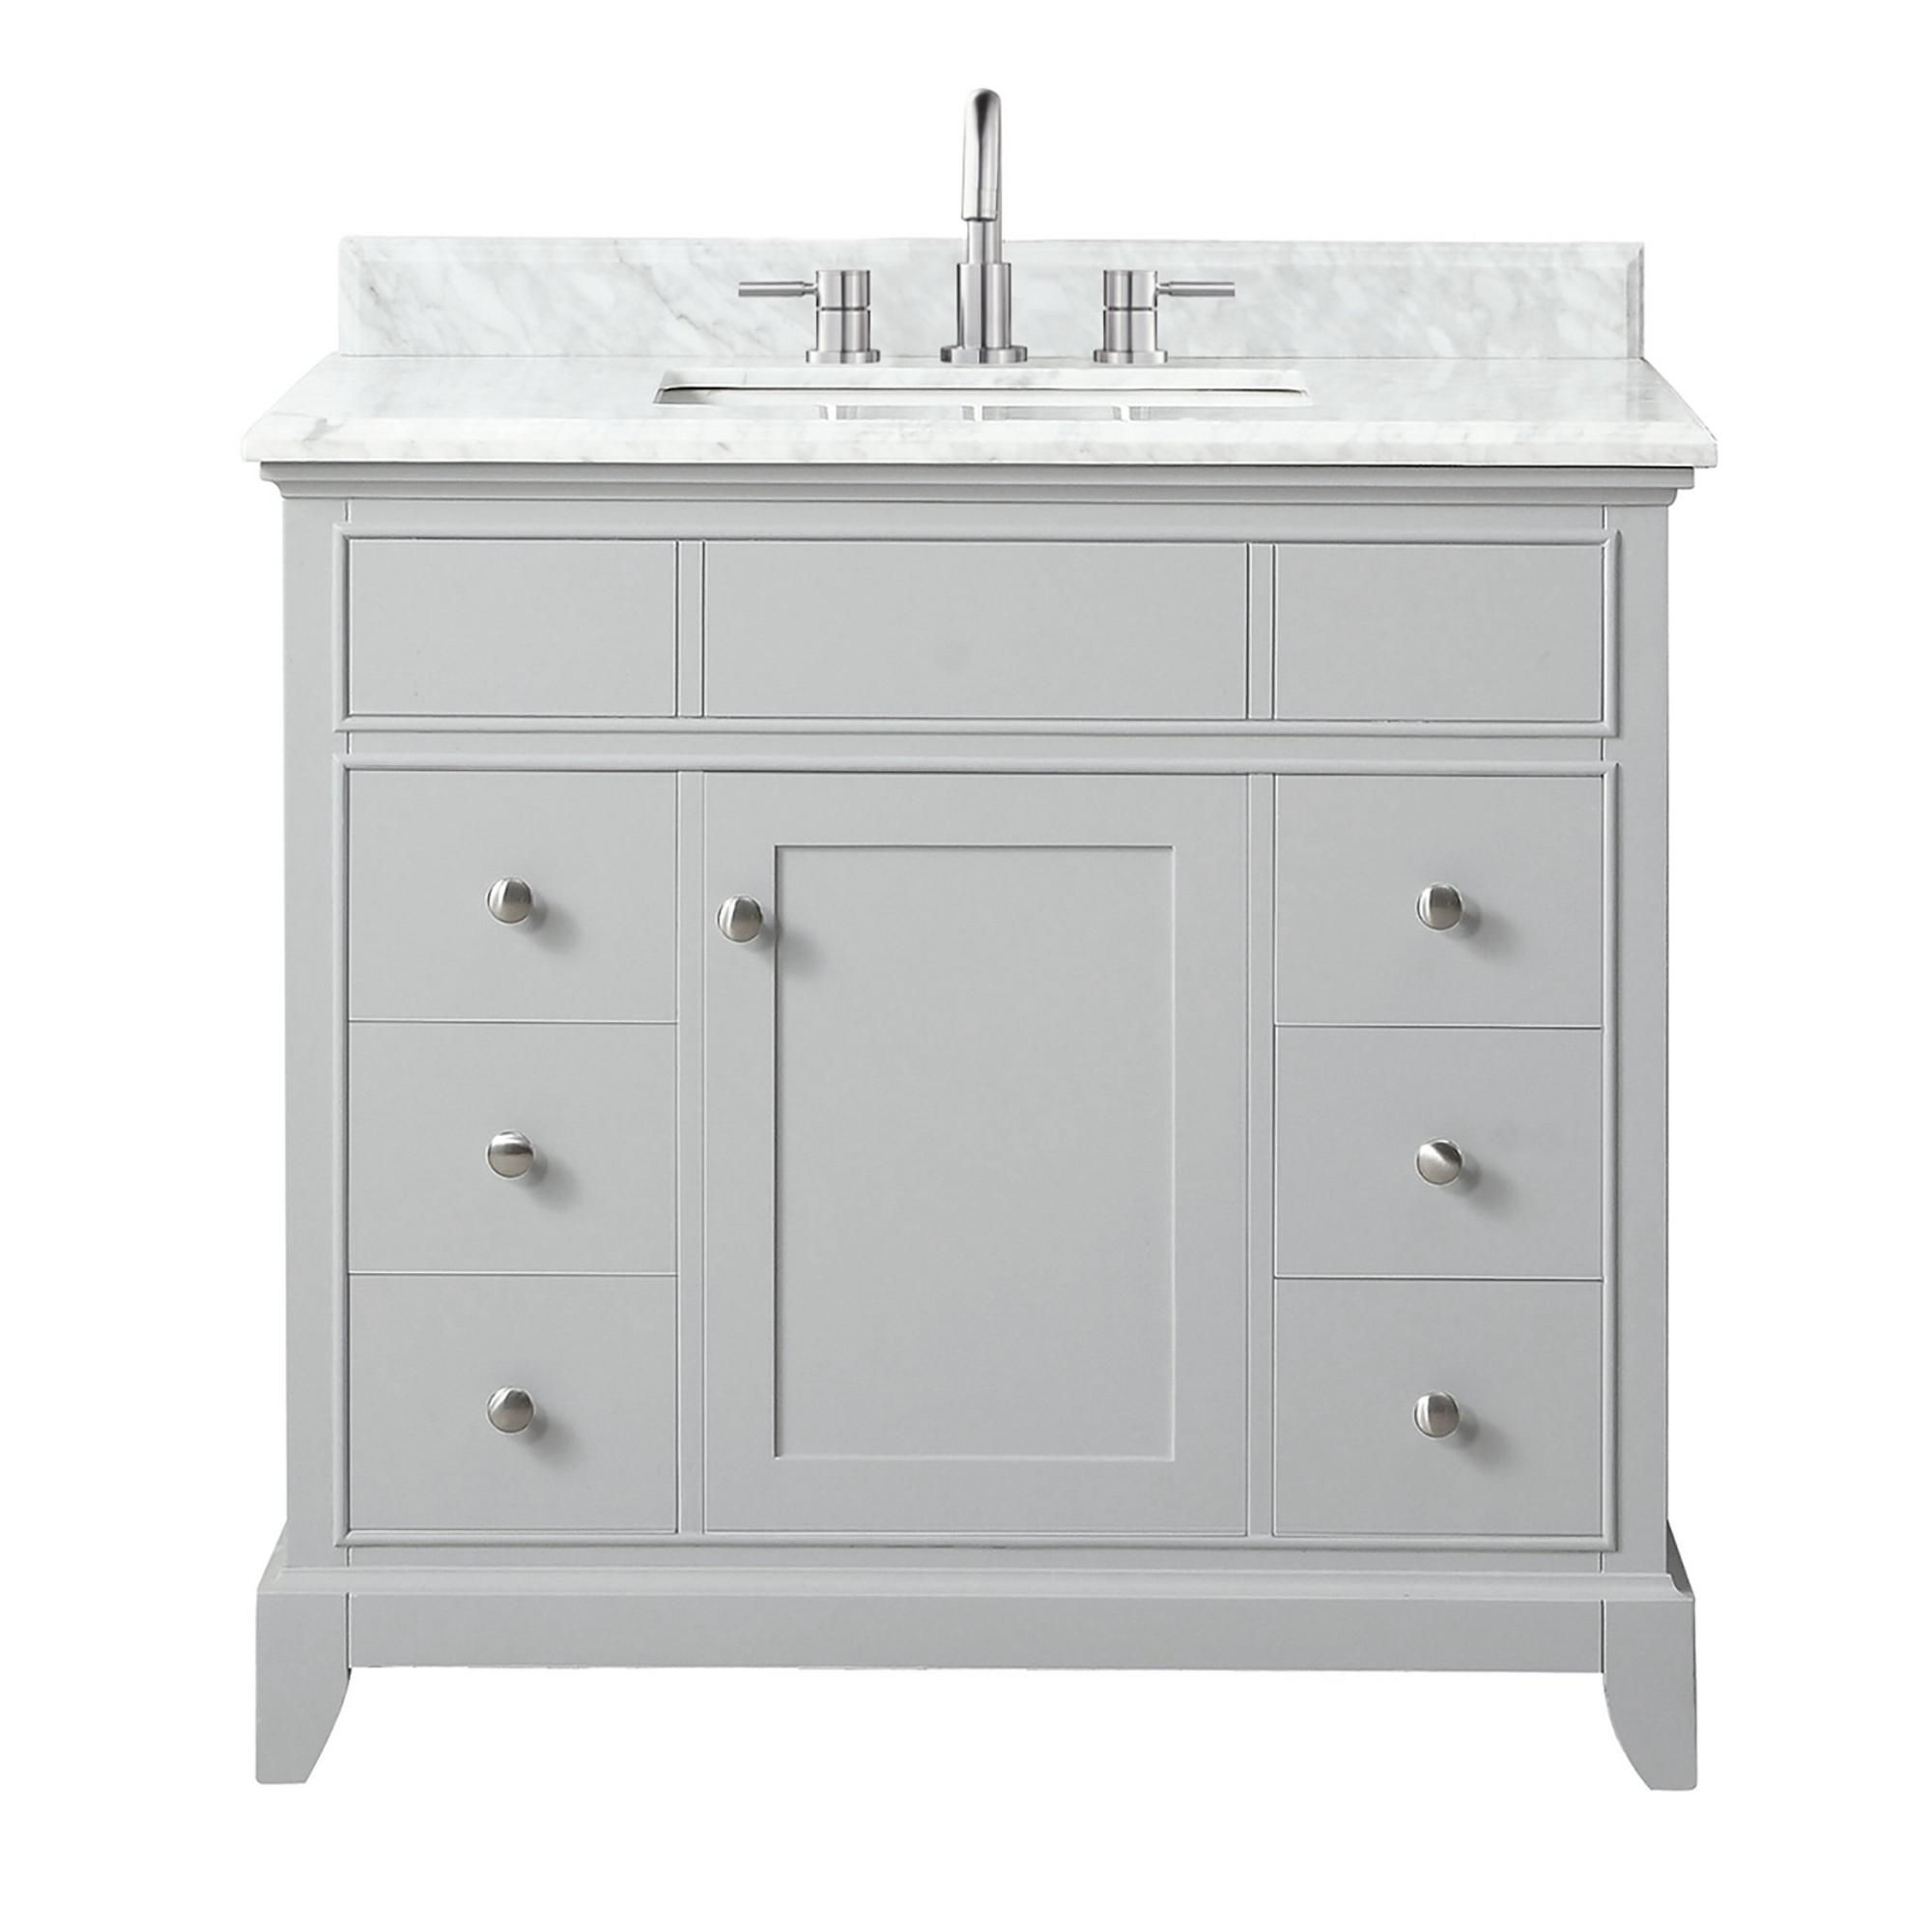 100610310_aurora-37-in-vanity-with-carrara-marble-top_main